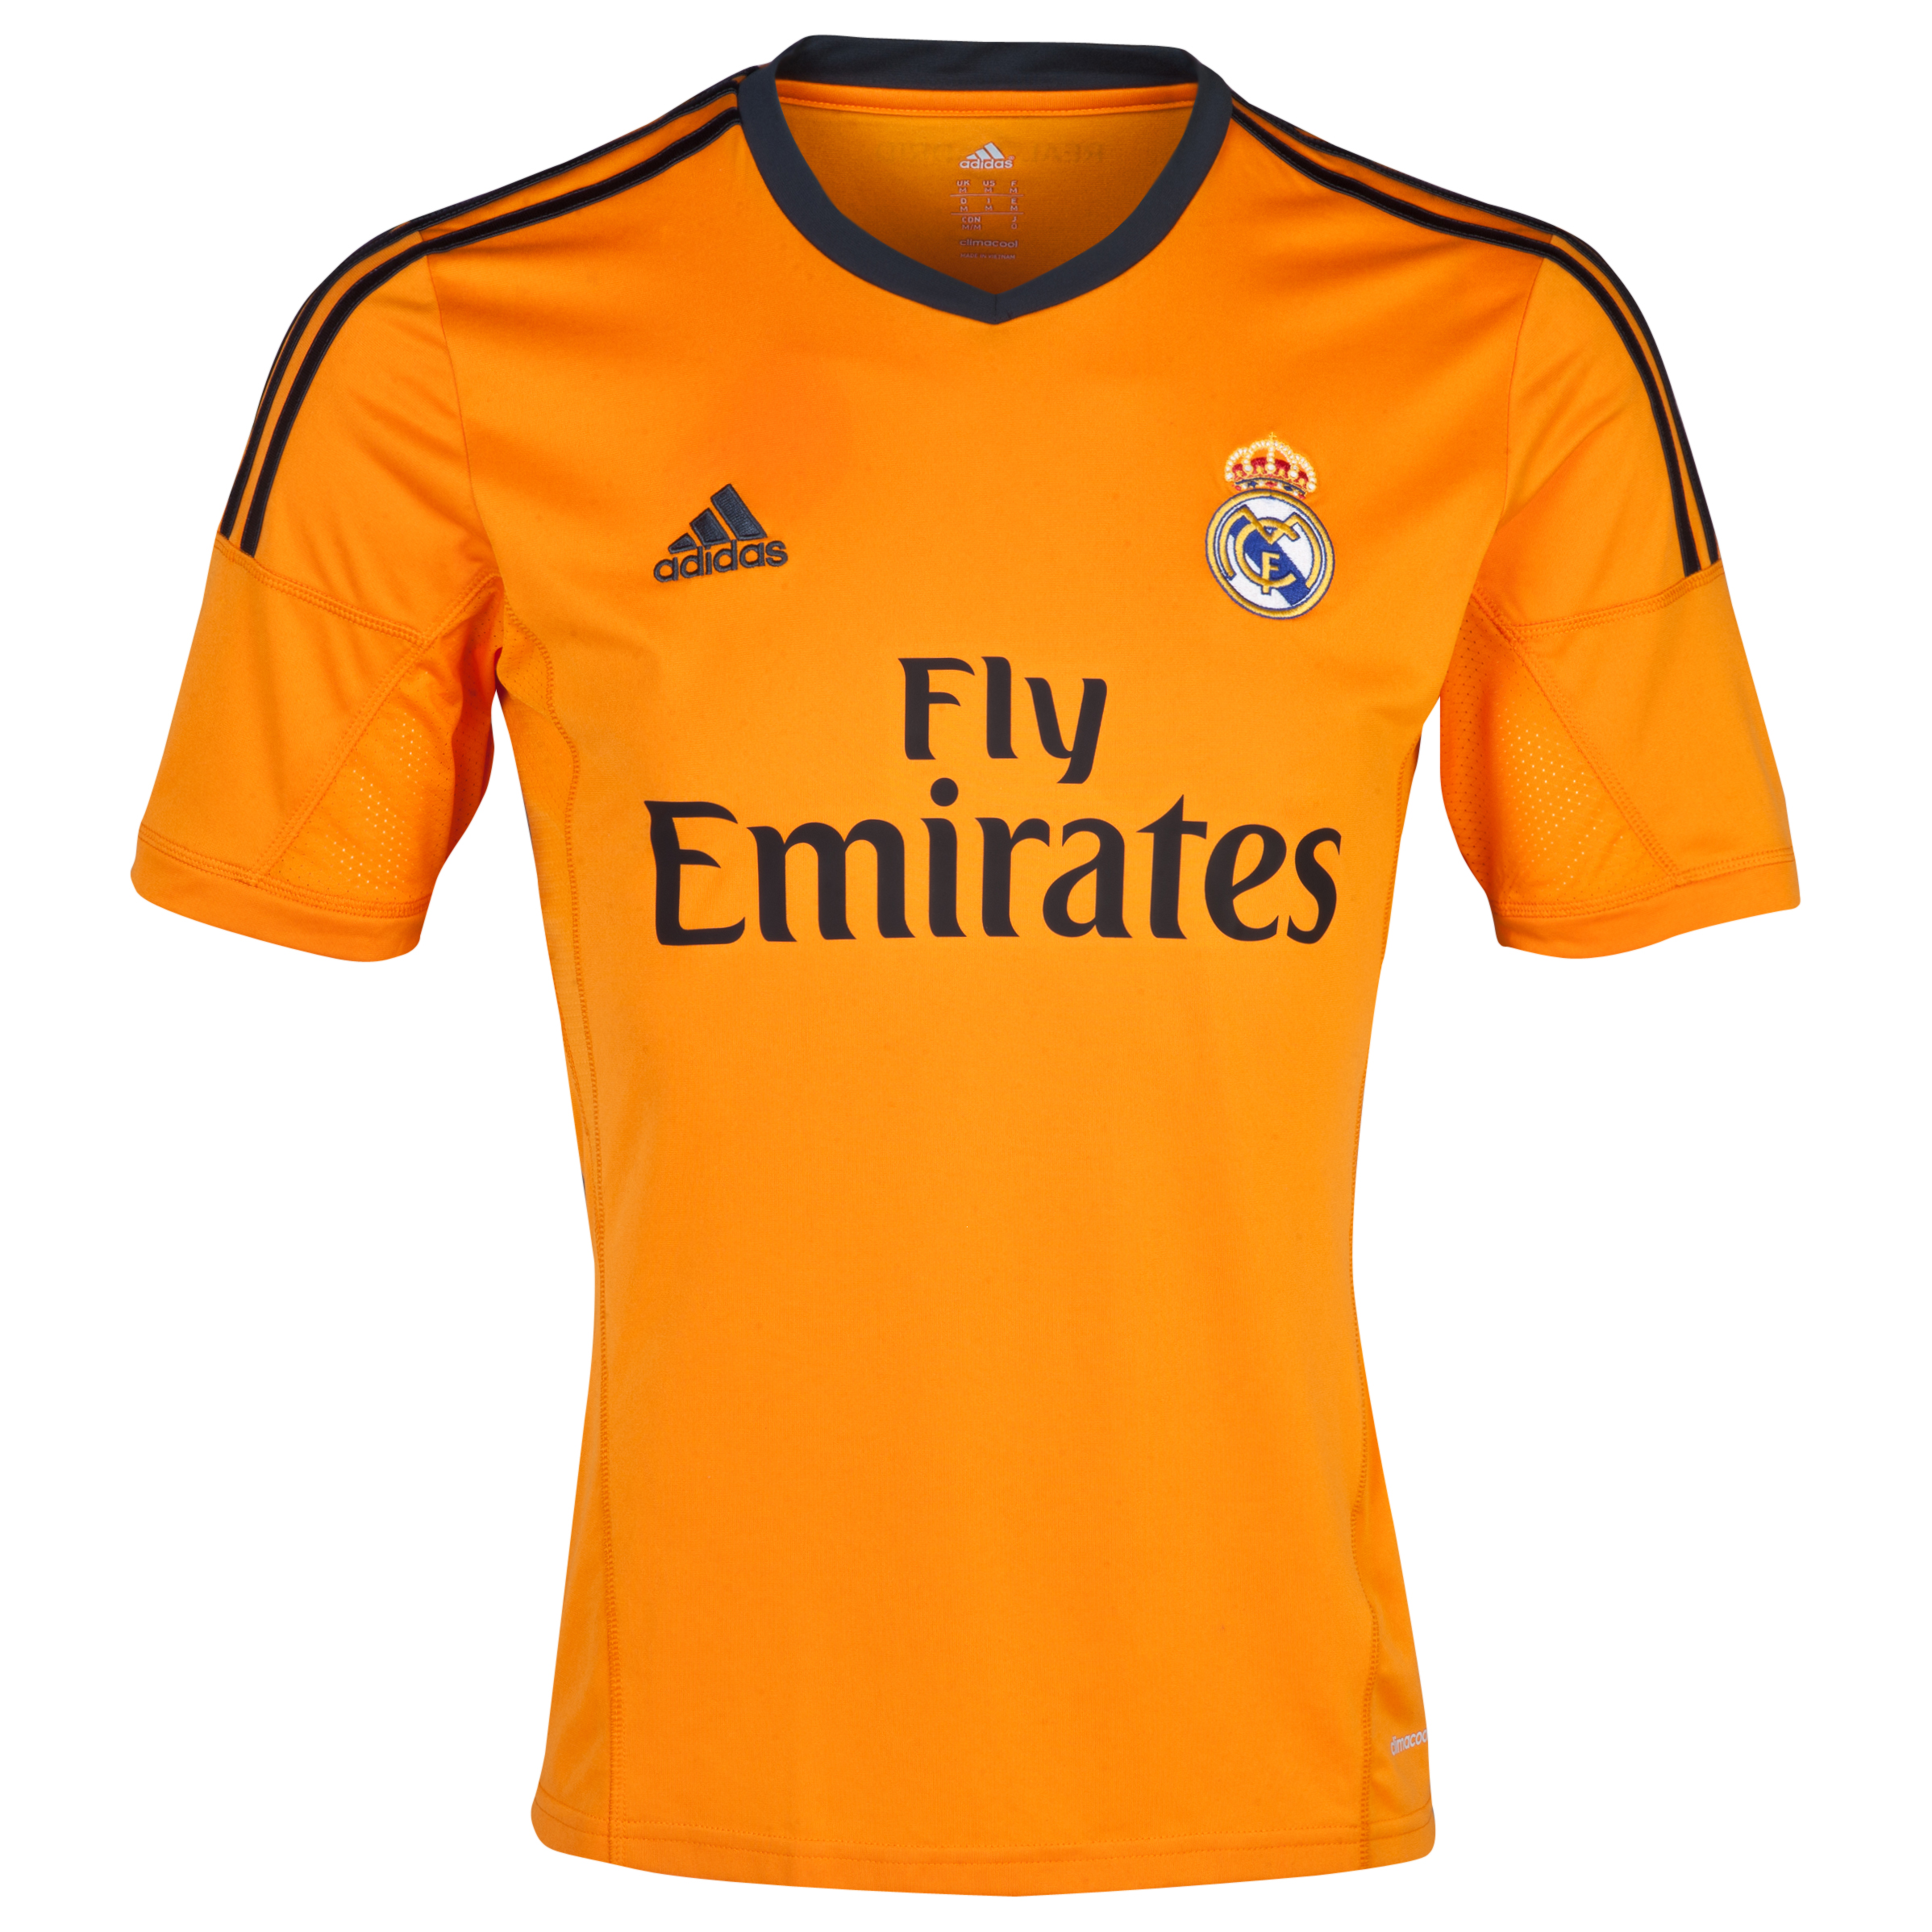 Buy Real Madrid Third Kit 2013/14